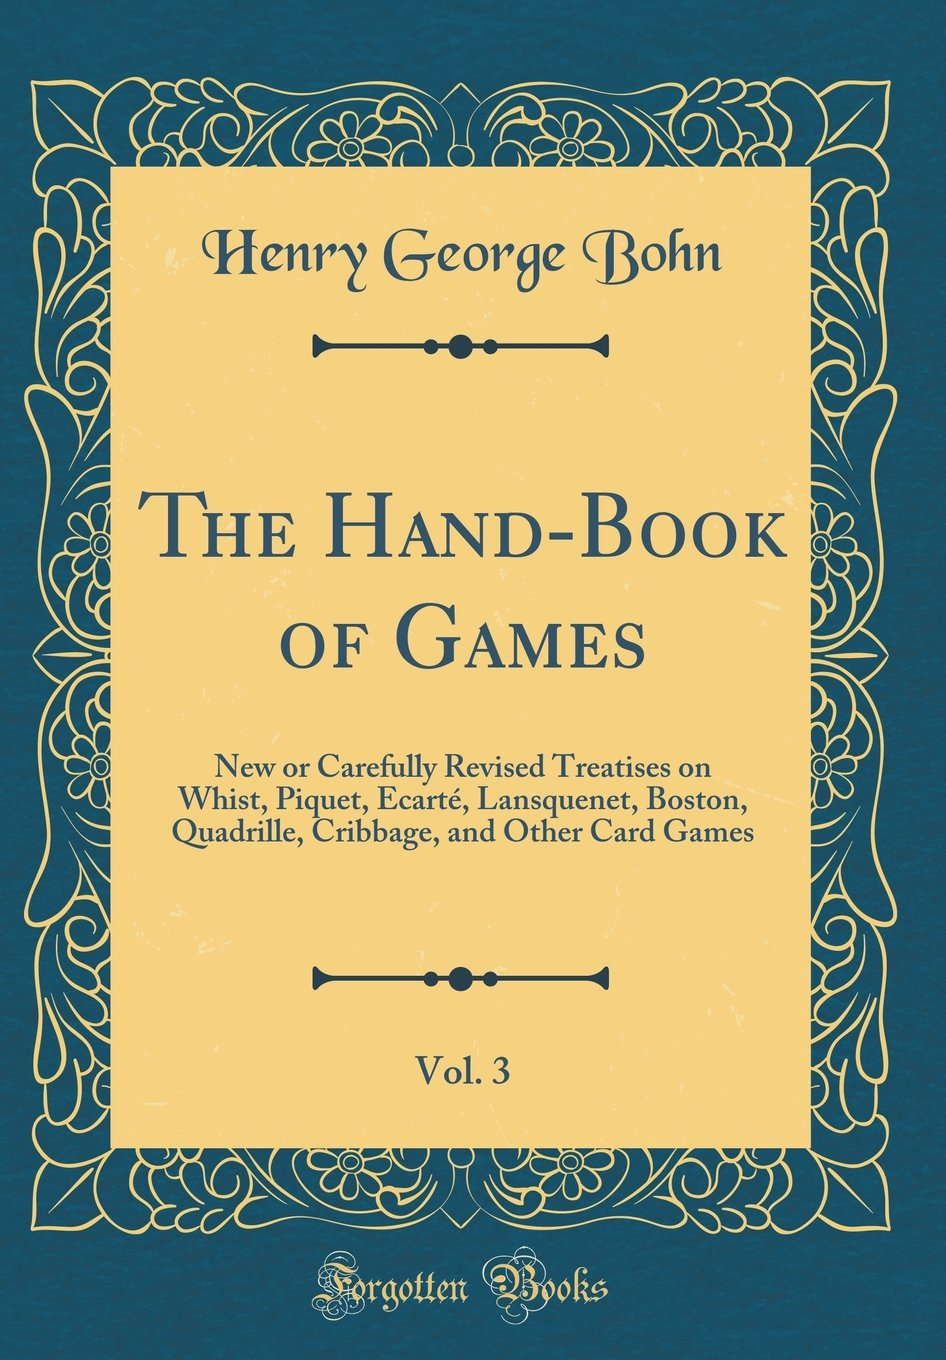 Read Online The Hand-Book of Games, Vol. 3 of 2: New or Carefully Revised Treatises on Whist, Piquet, Ecarté, Lansquenet, Boston, Quadrille, Cribbage, and Other Card Games (Classic Reprint) pdf epub